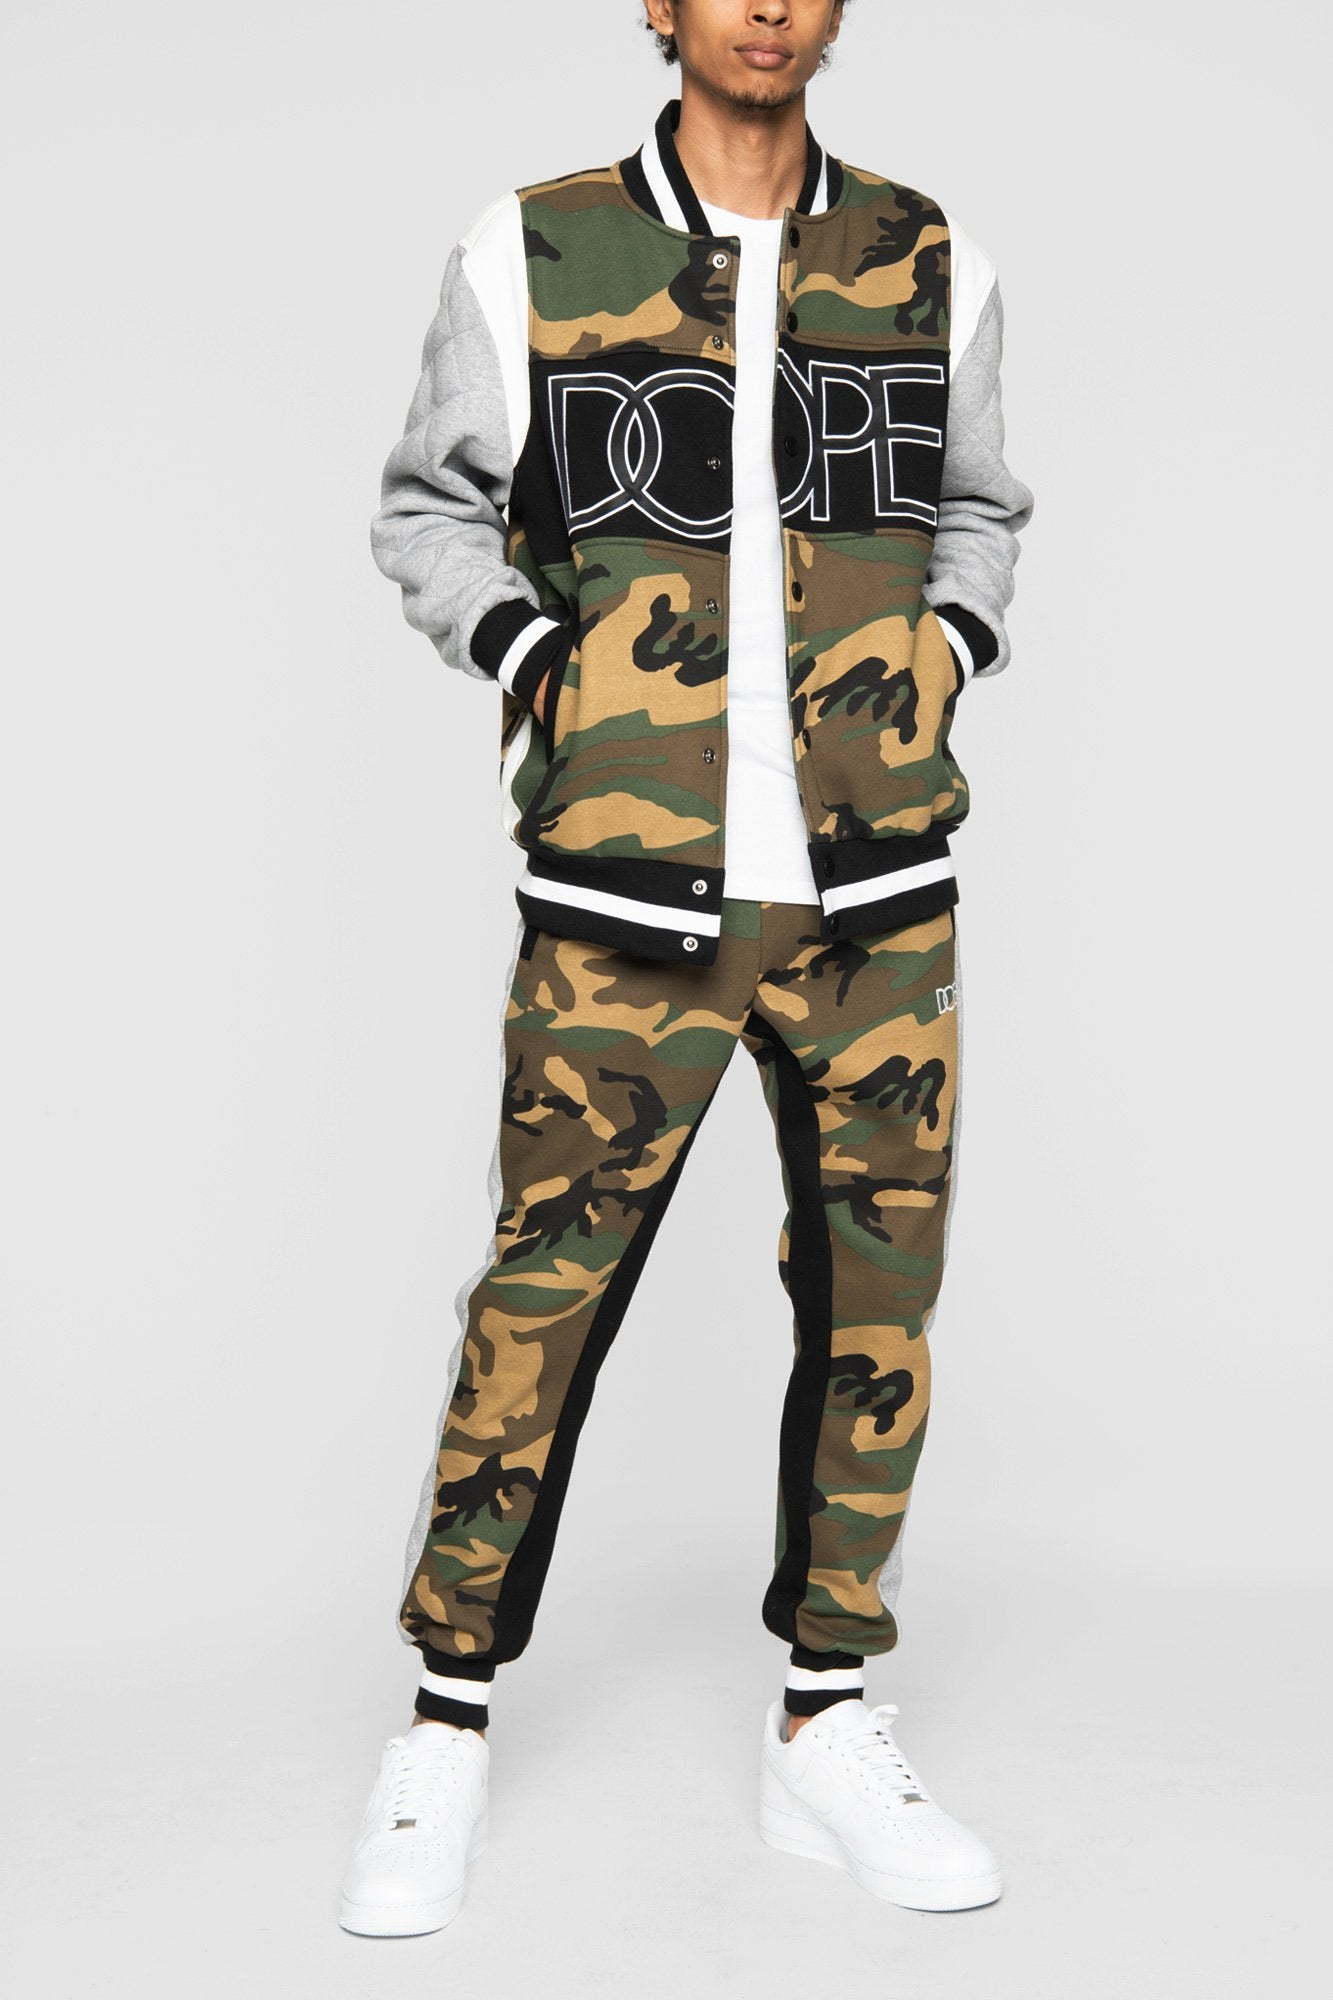 DOPE Rally Jogger Sweatpants #Woodland Camo